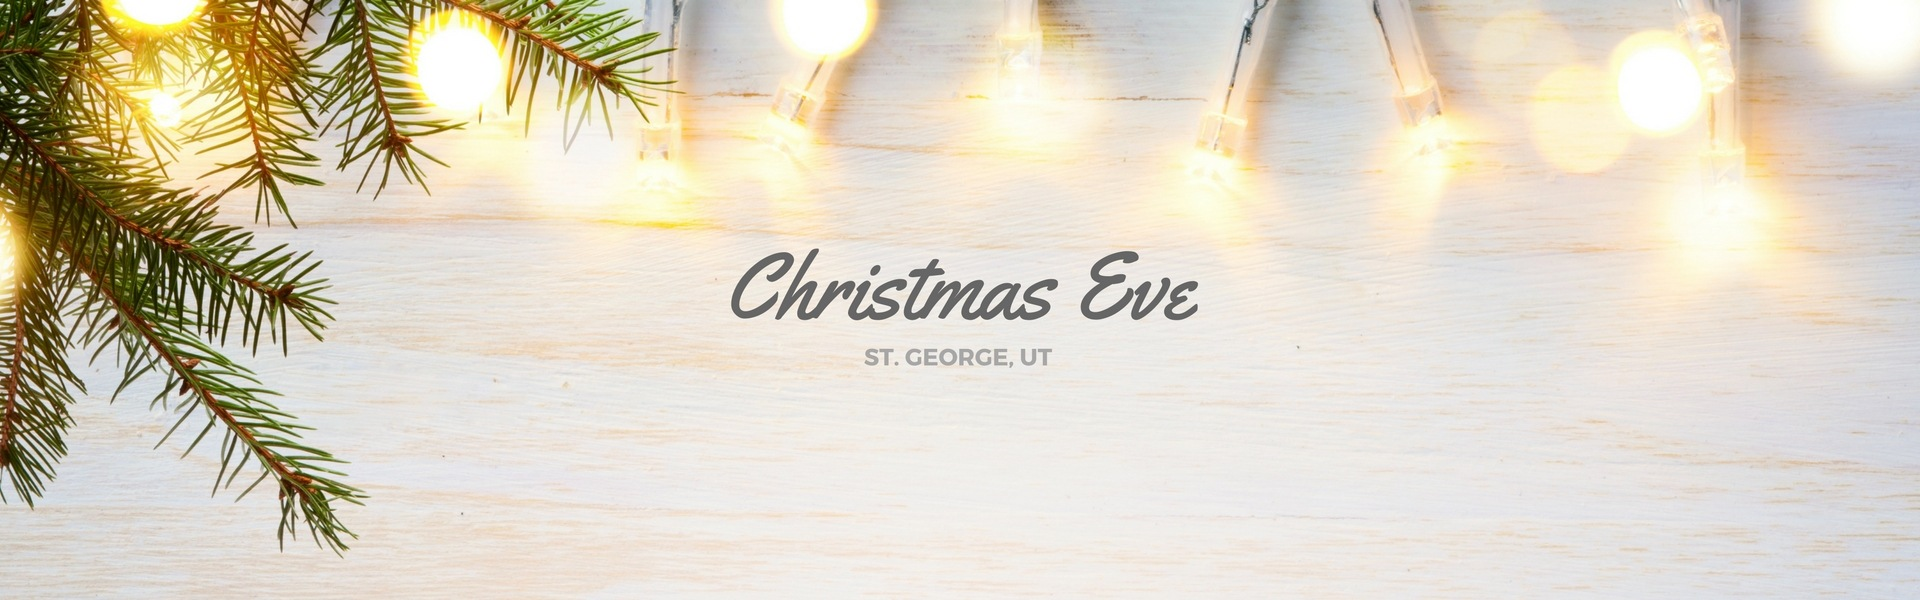 Christmas Eve in St. George